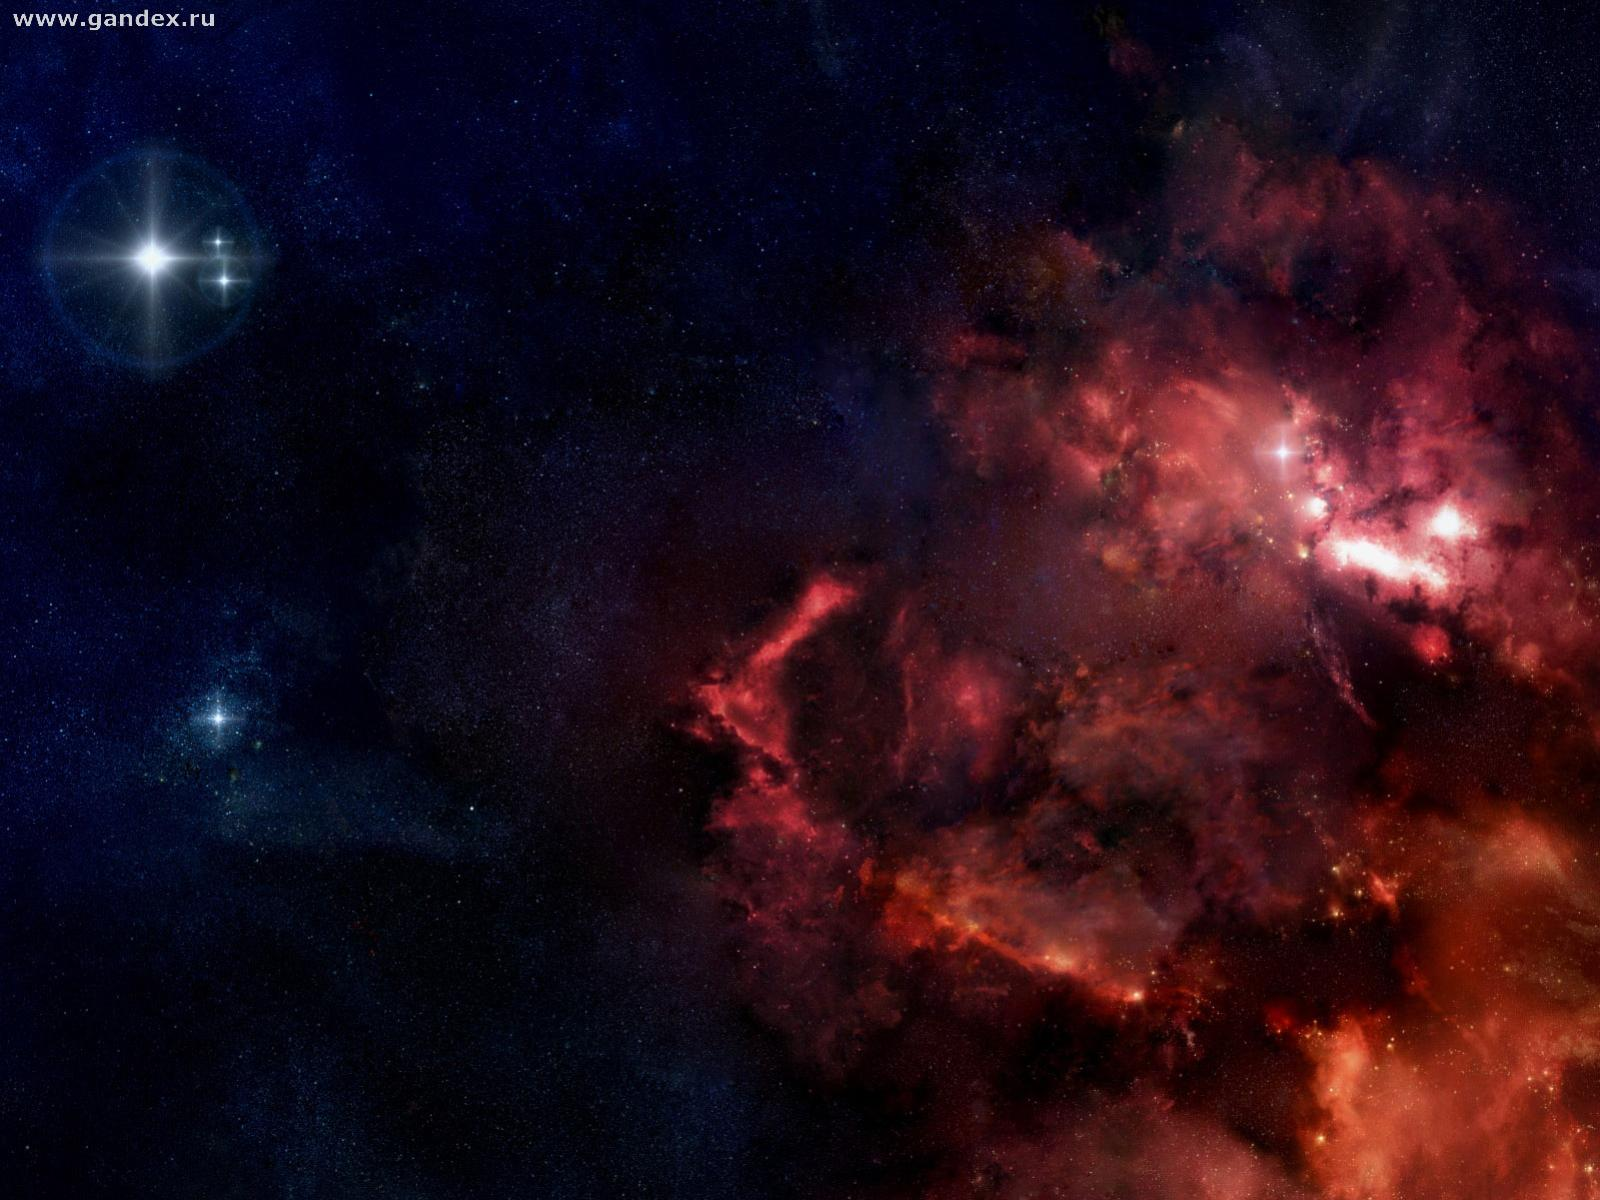 Stars and black-and-red phenomena in space, wallpaper